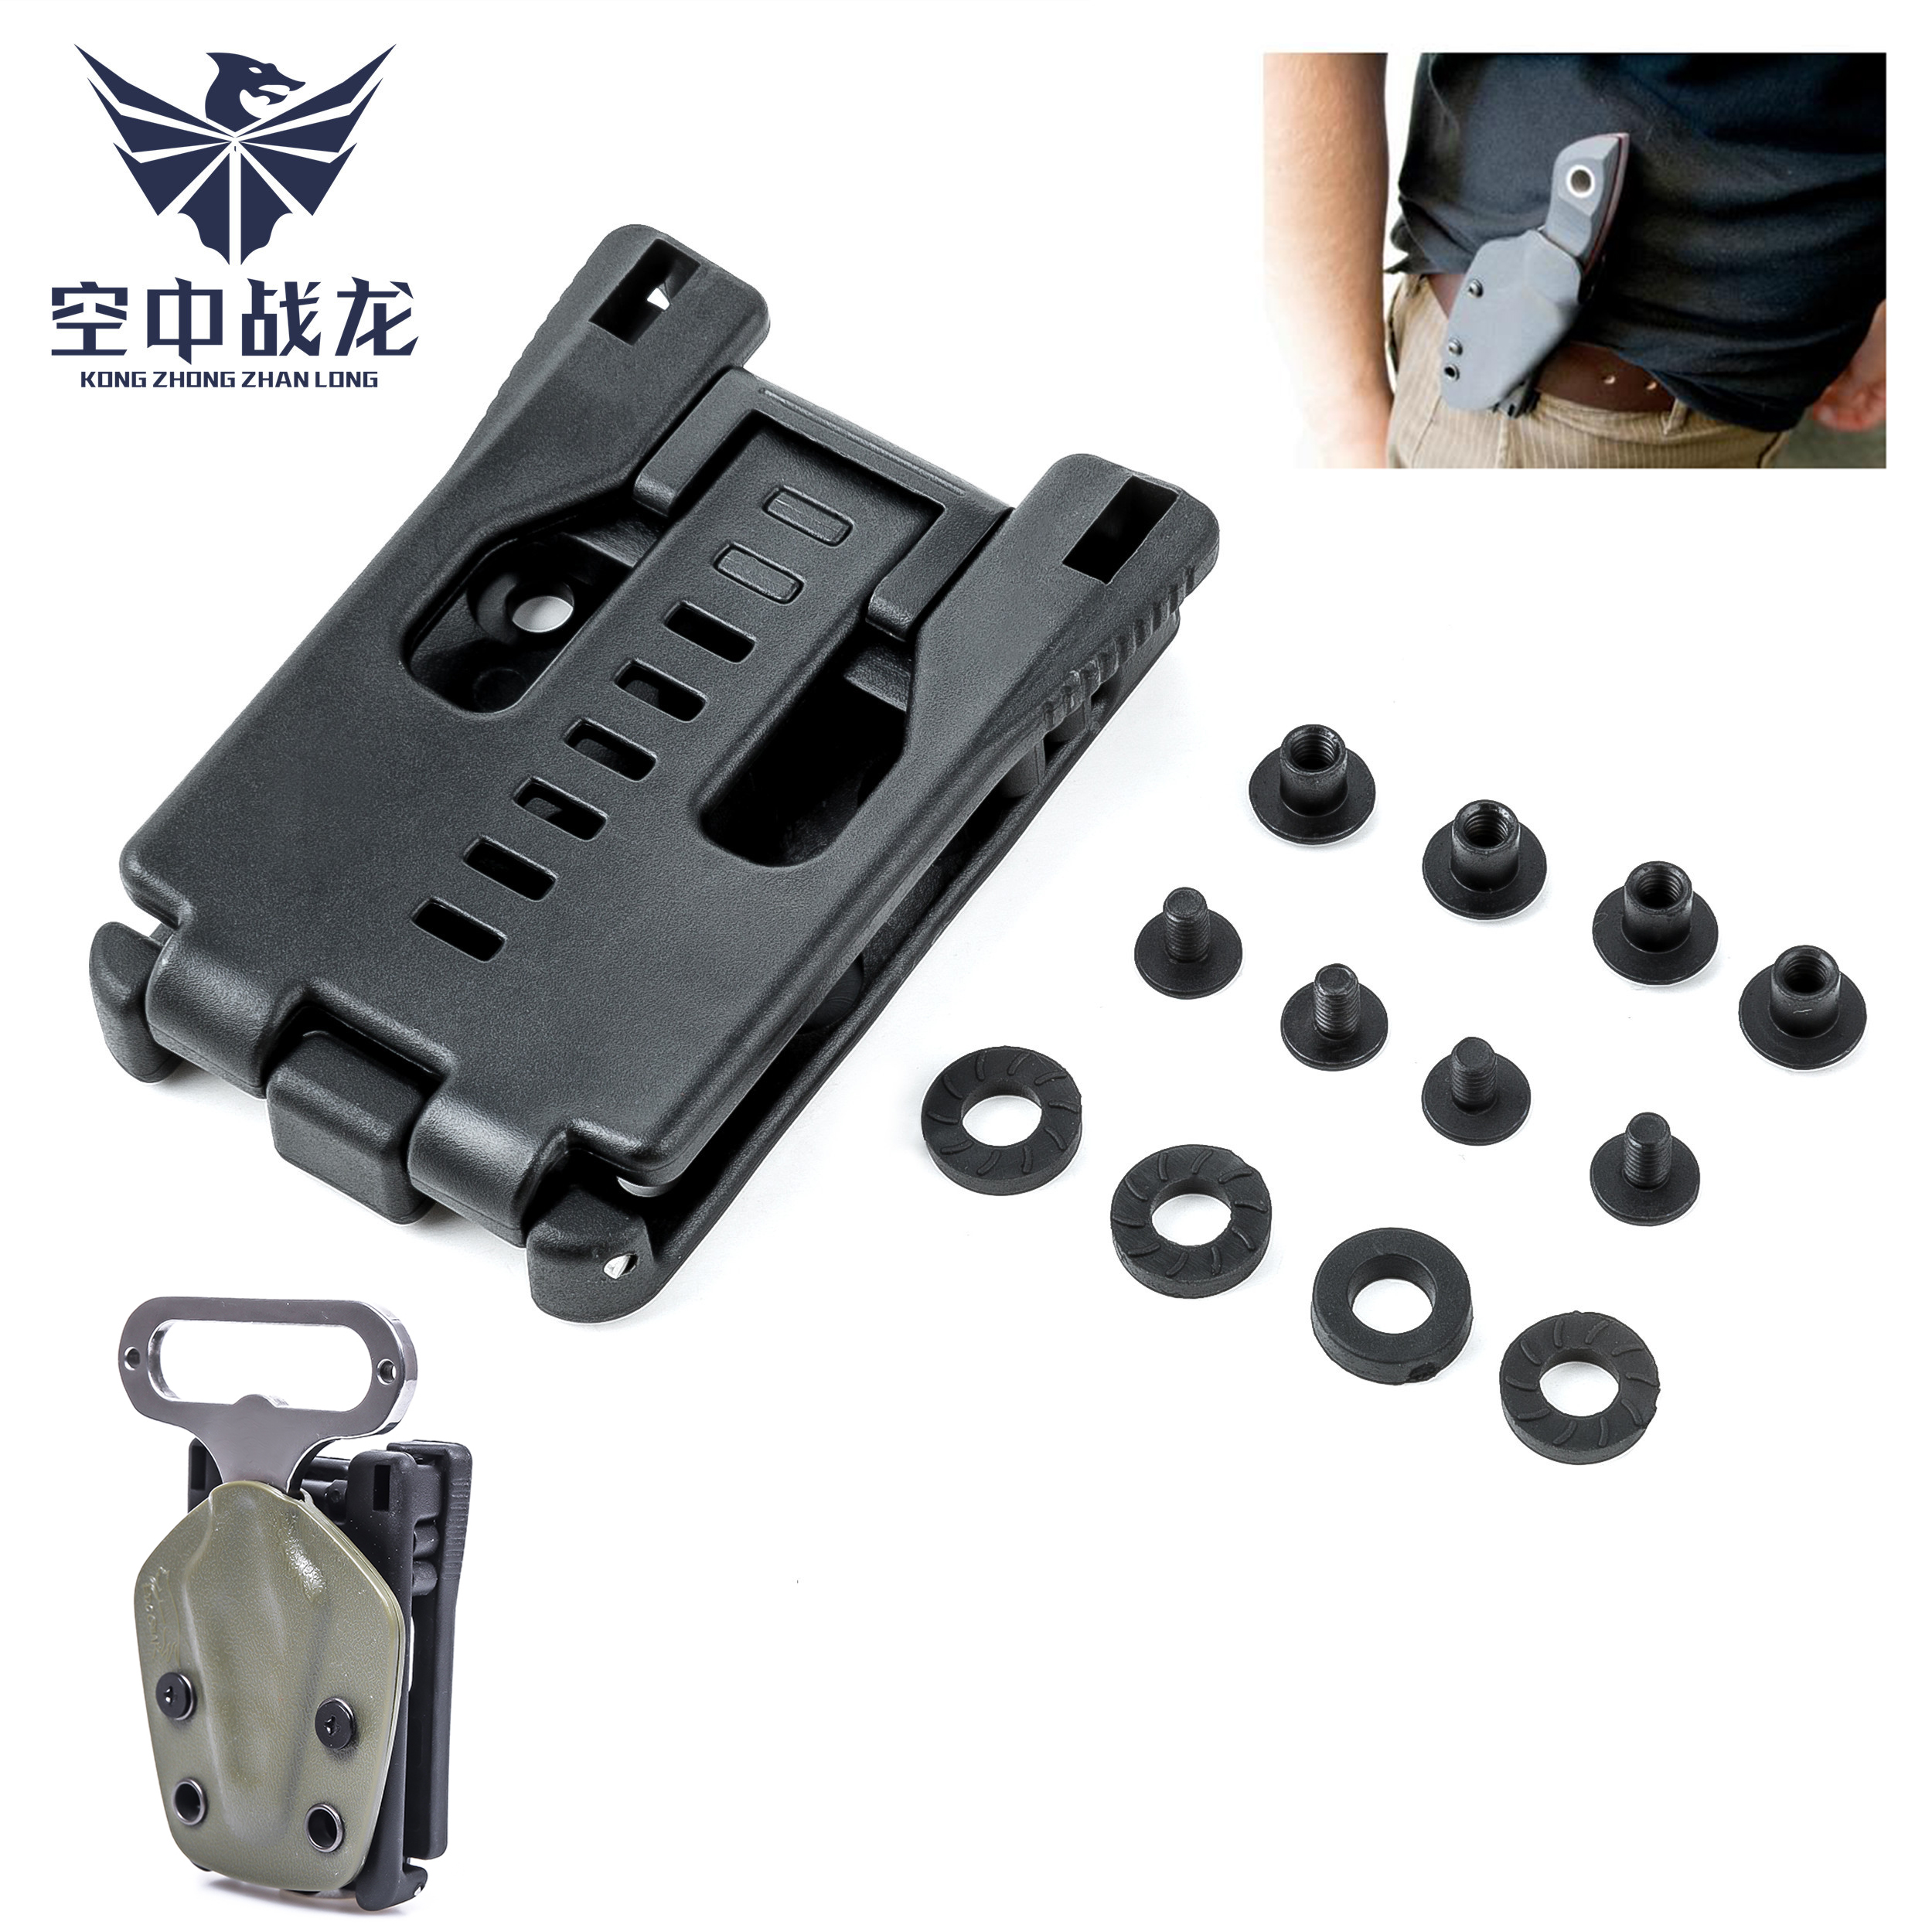 EDC Tek Lok Sheath Scabbard Belt Clip Waist Clamp Outdoor Camp Portable Tool Fixed Kit